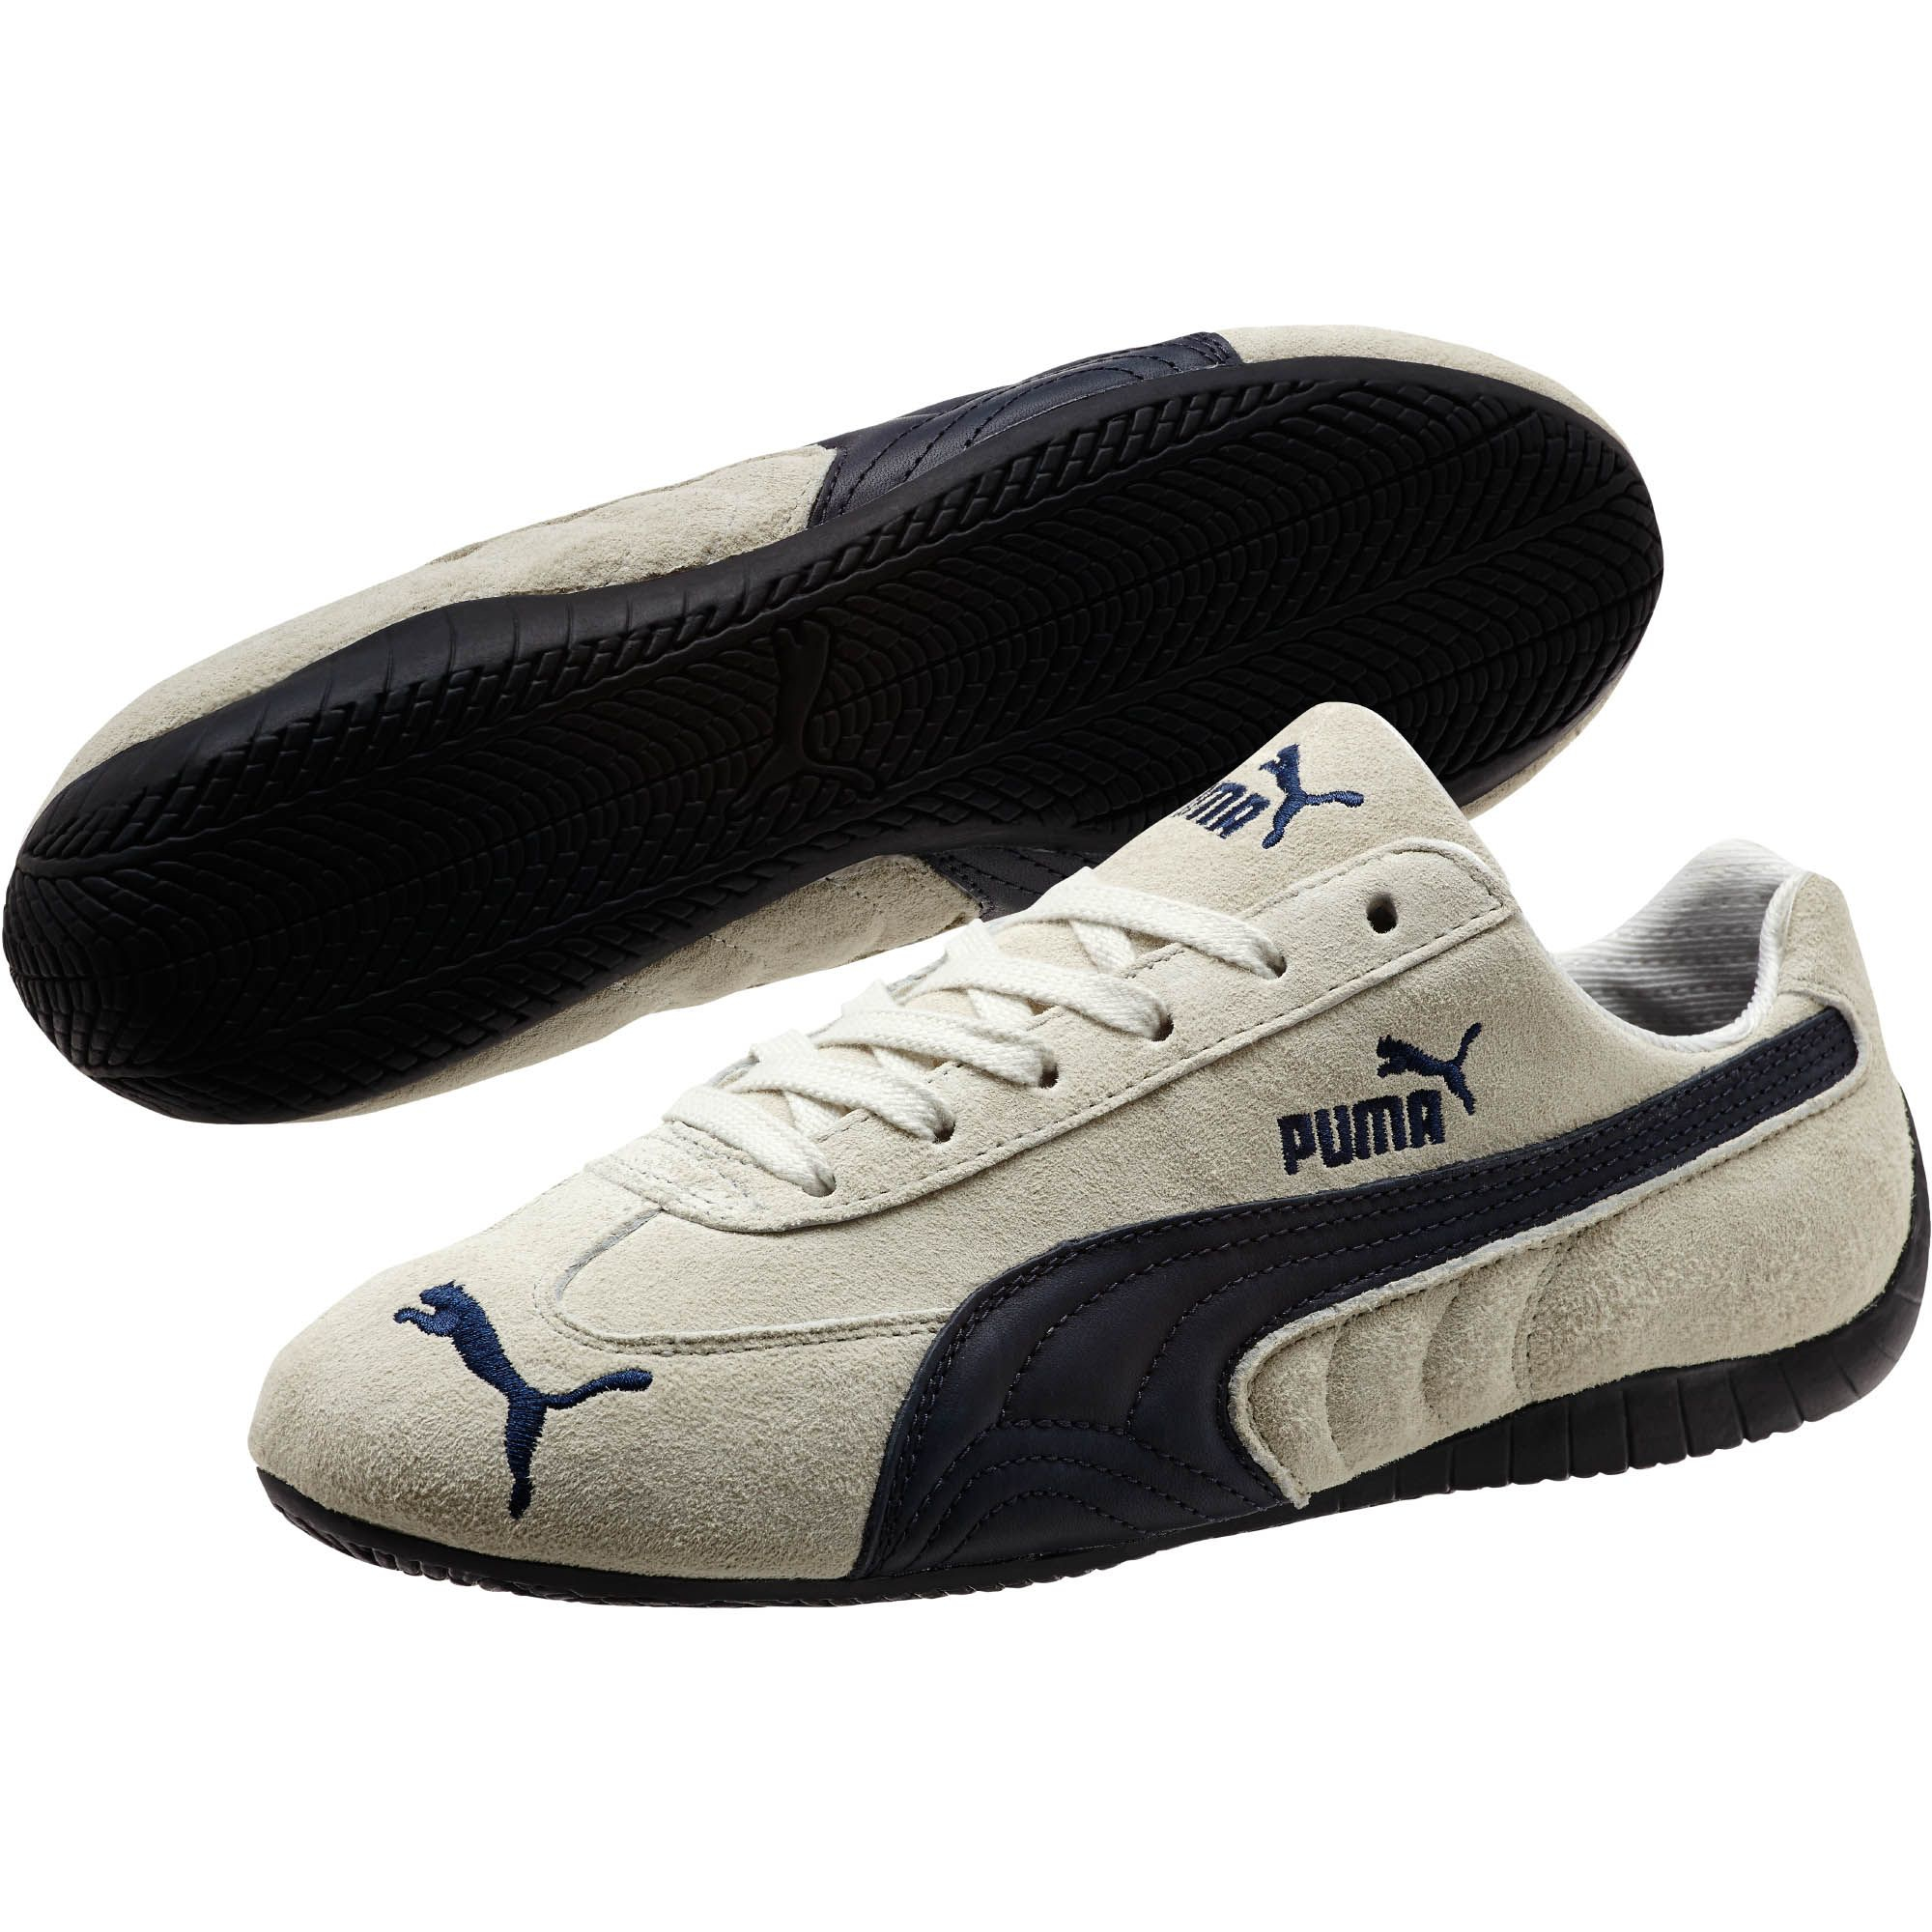 coupon code lyst puma speed cat sd shoes in metallic 69729 a3d98 1edaca237